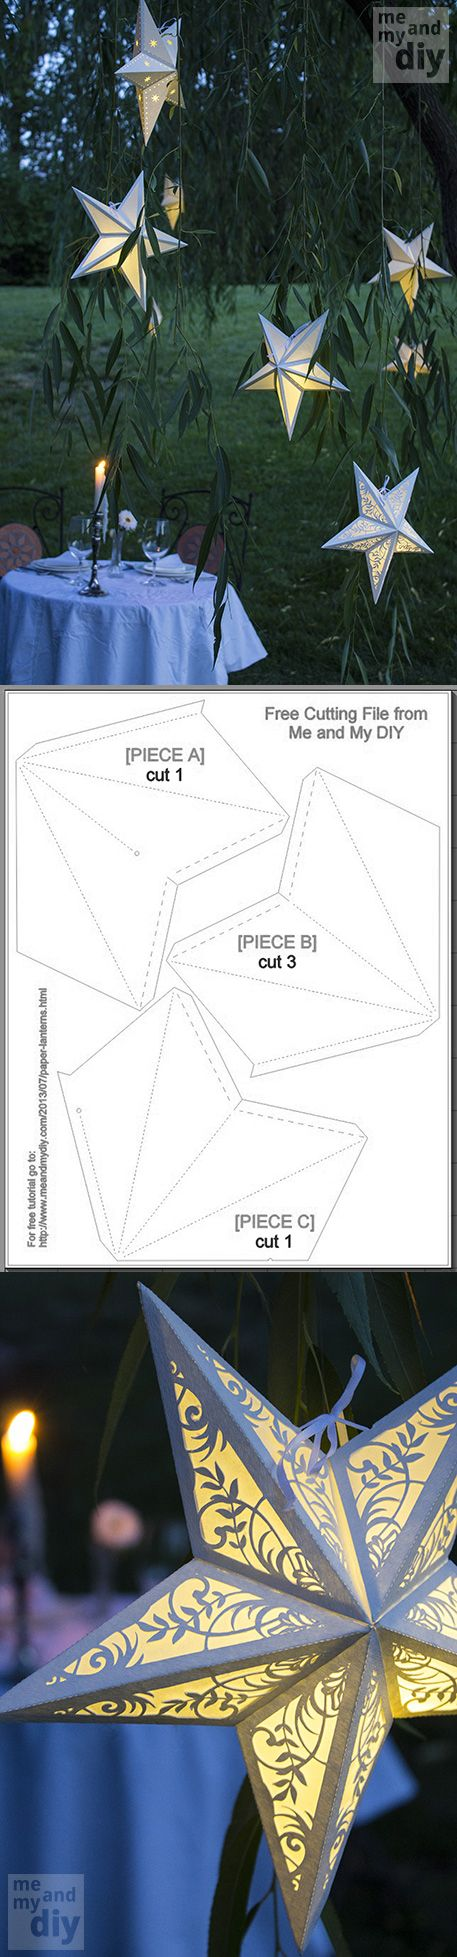 Diy Paper Star Lanterns And Free Cutting Files Silhouette Cameo 3d Origami Swan Diagram Http Howtoorigamicom Origamiswanhtml With File Pdf Template Amp Step By